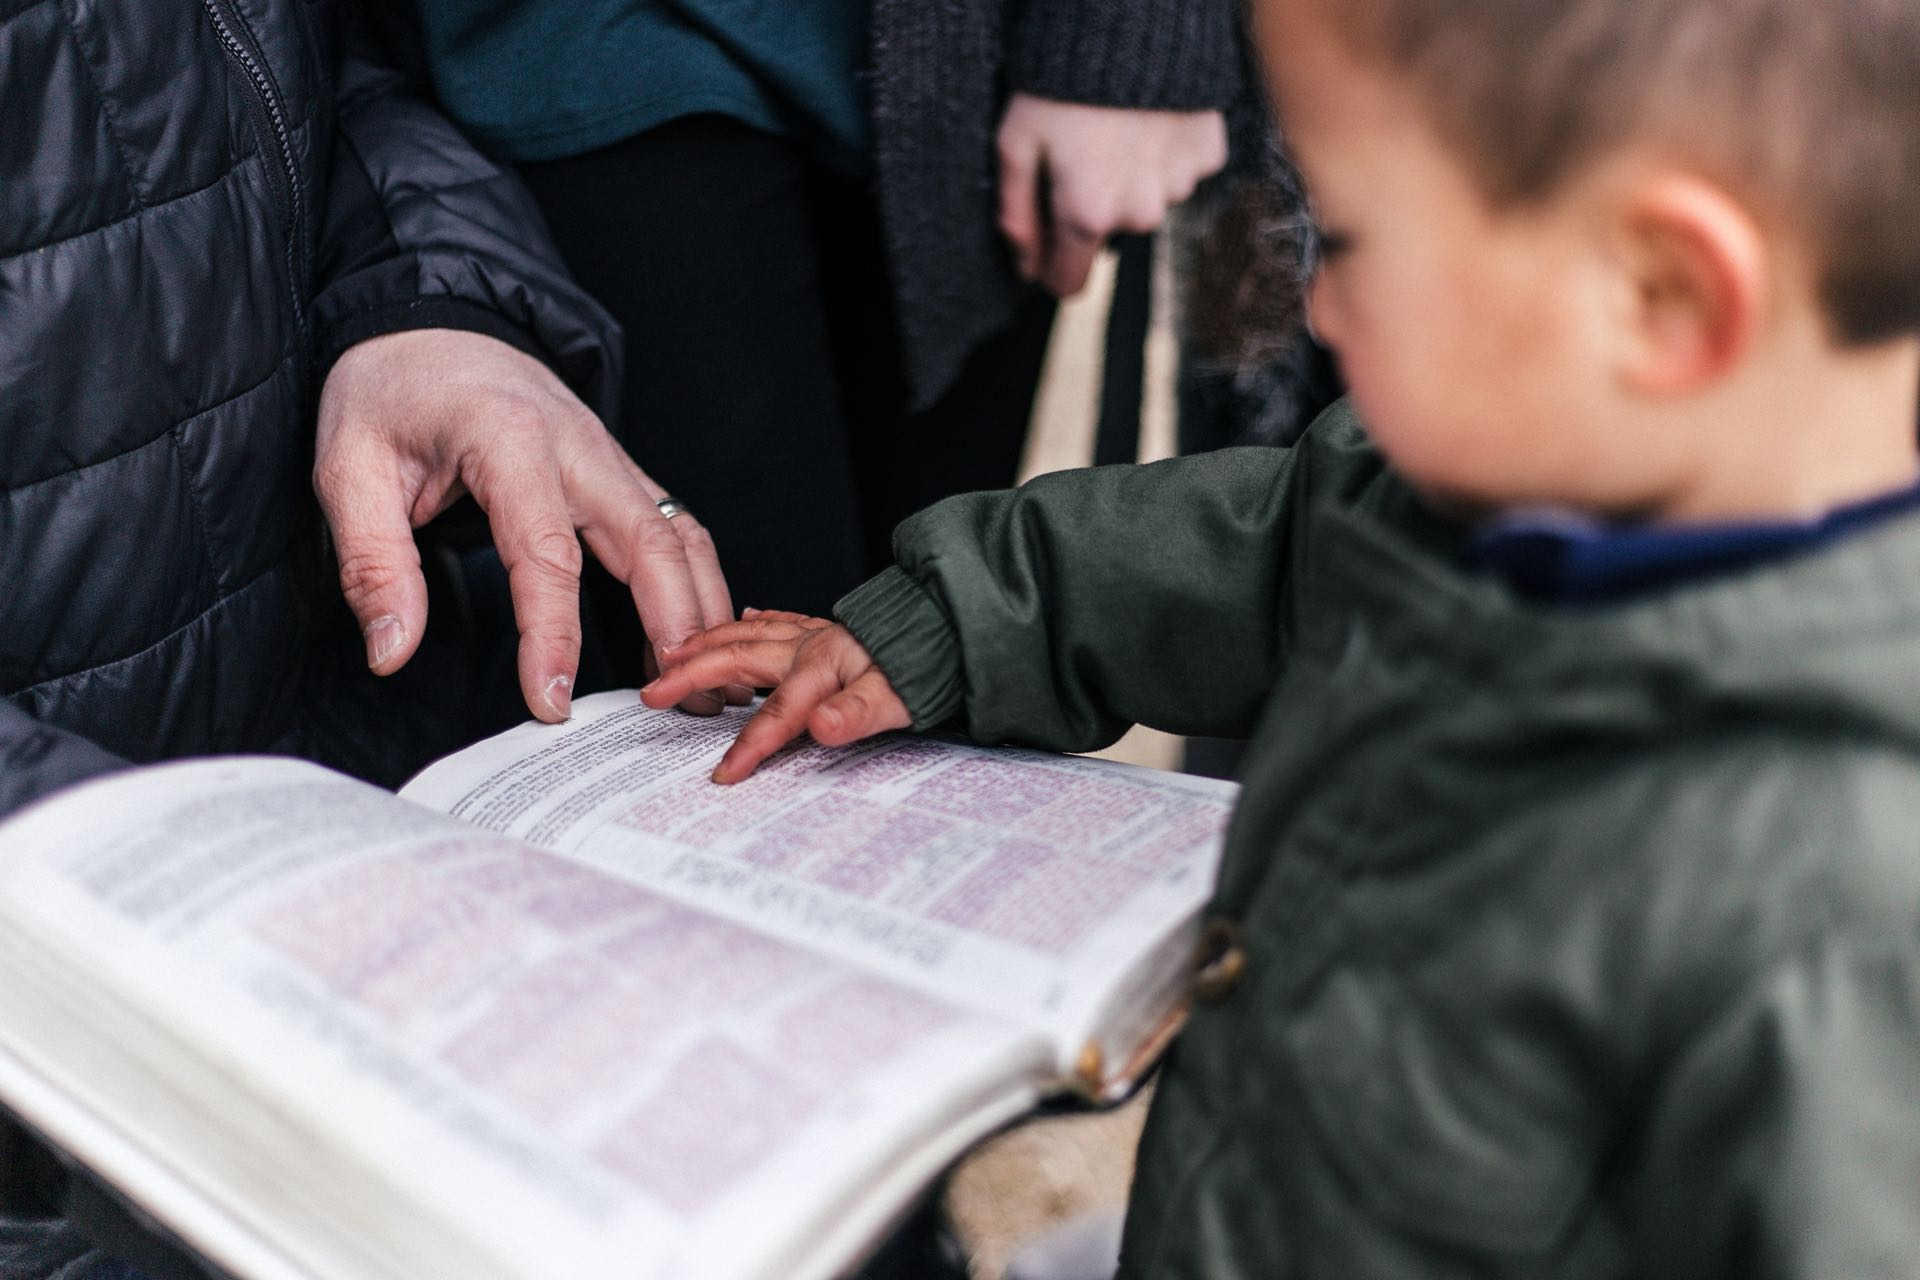 Small child pointing to a verse in the Bible with adult holding the book